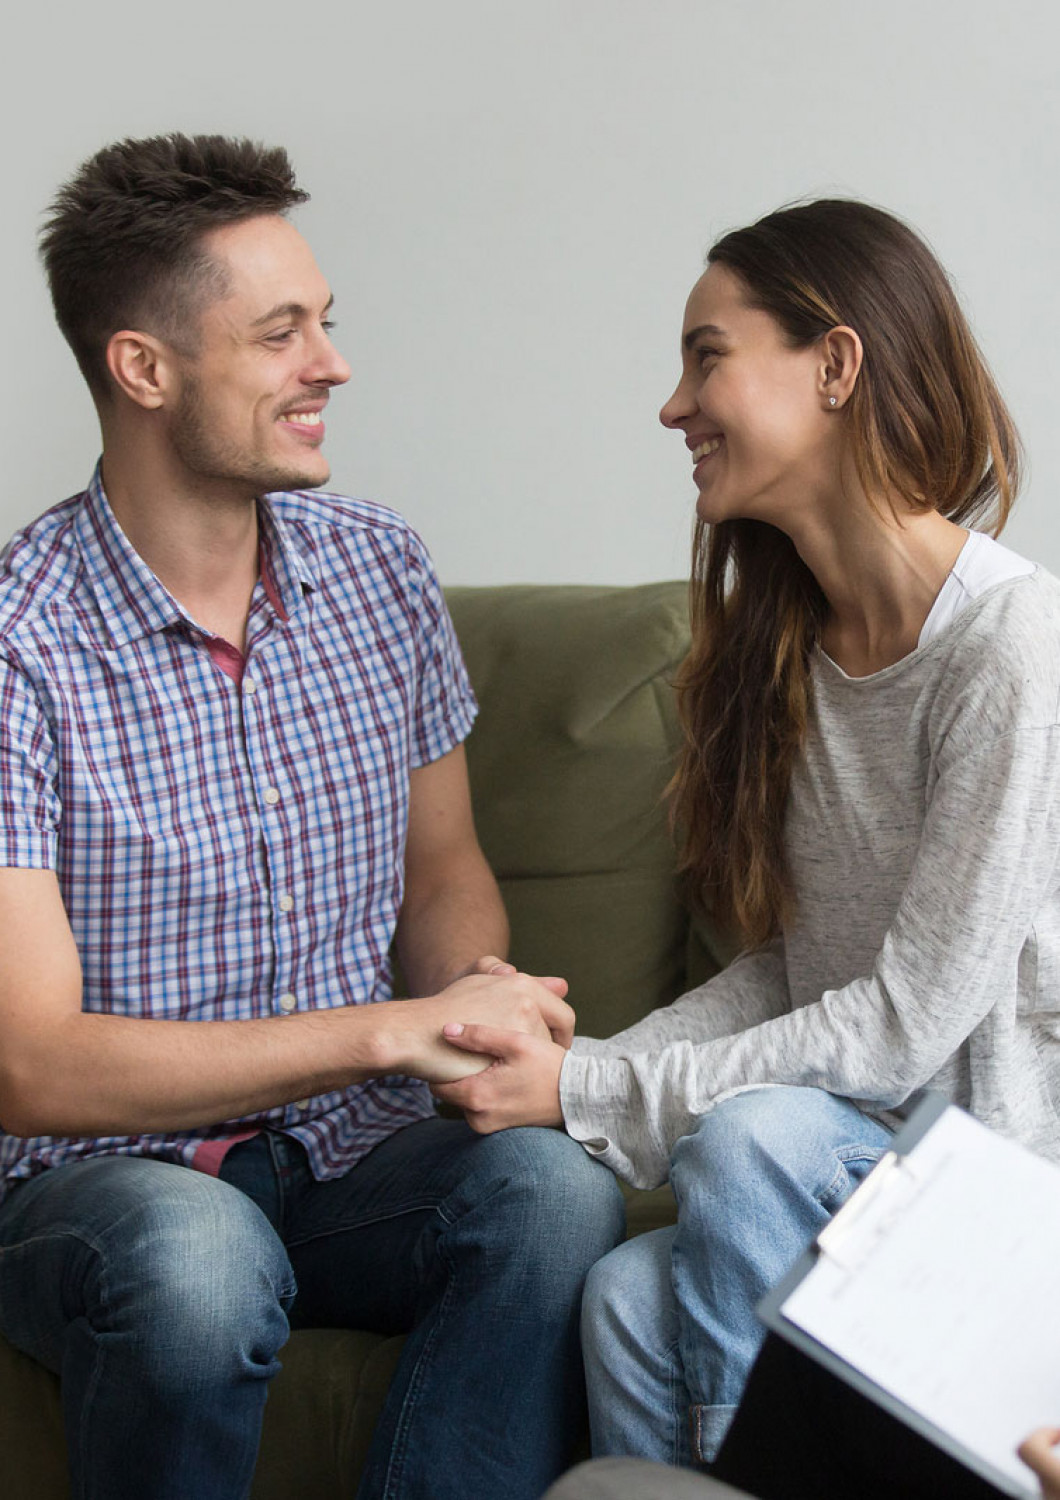 marriage counseling services in Murrieta, CA